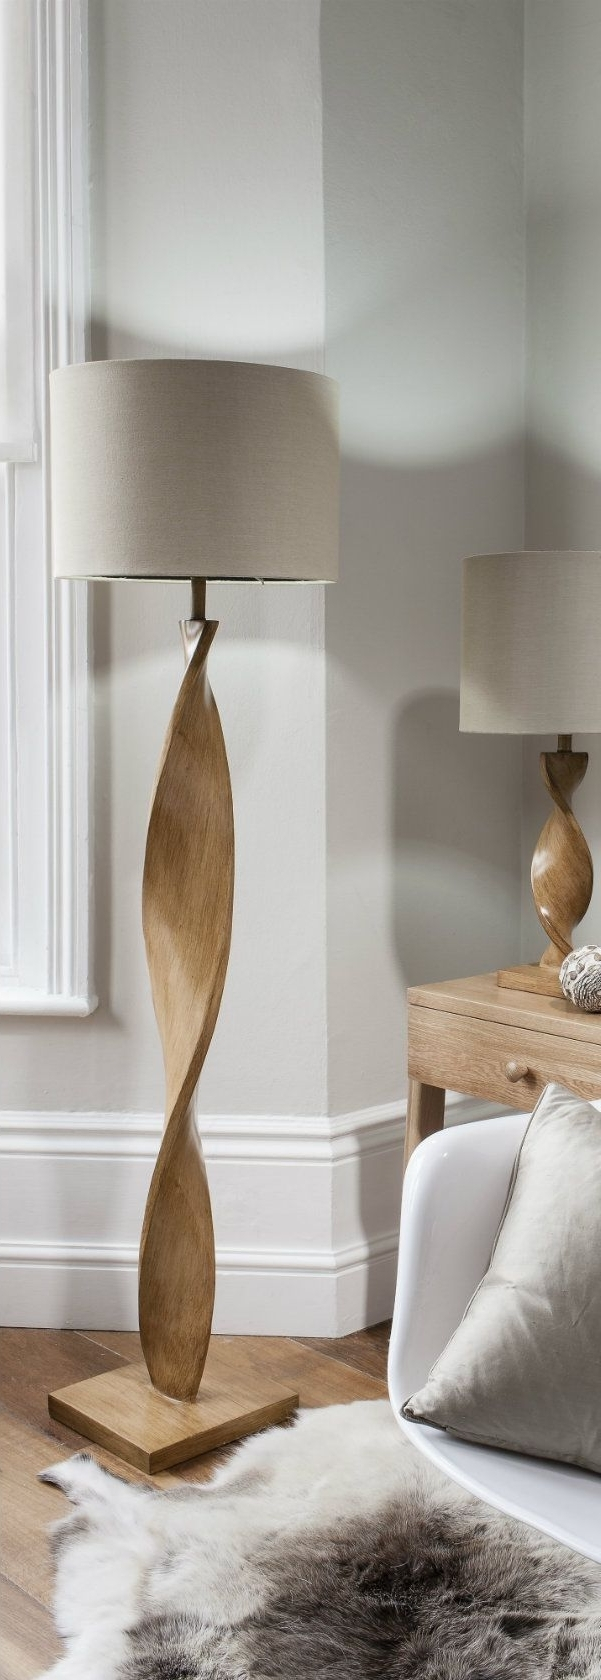 Most Up To Date Living Room Lamp Ideas – Vitaminshoppe – Vitaminshoppe Within Houzz Living Room Table Lamps (View 4 of 15)